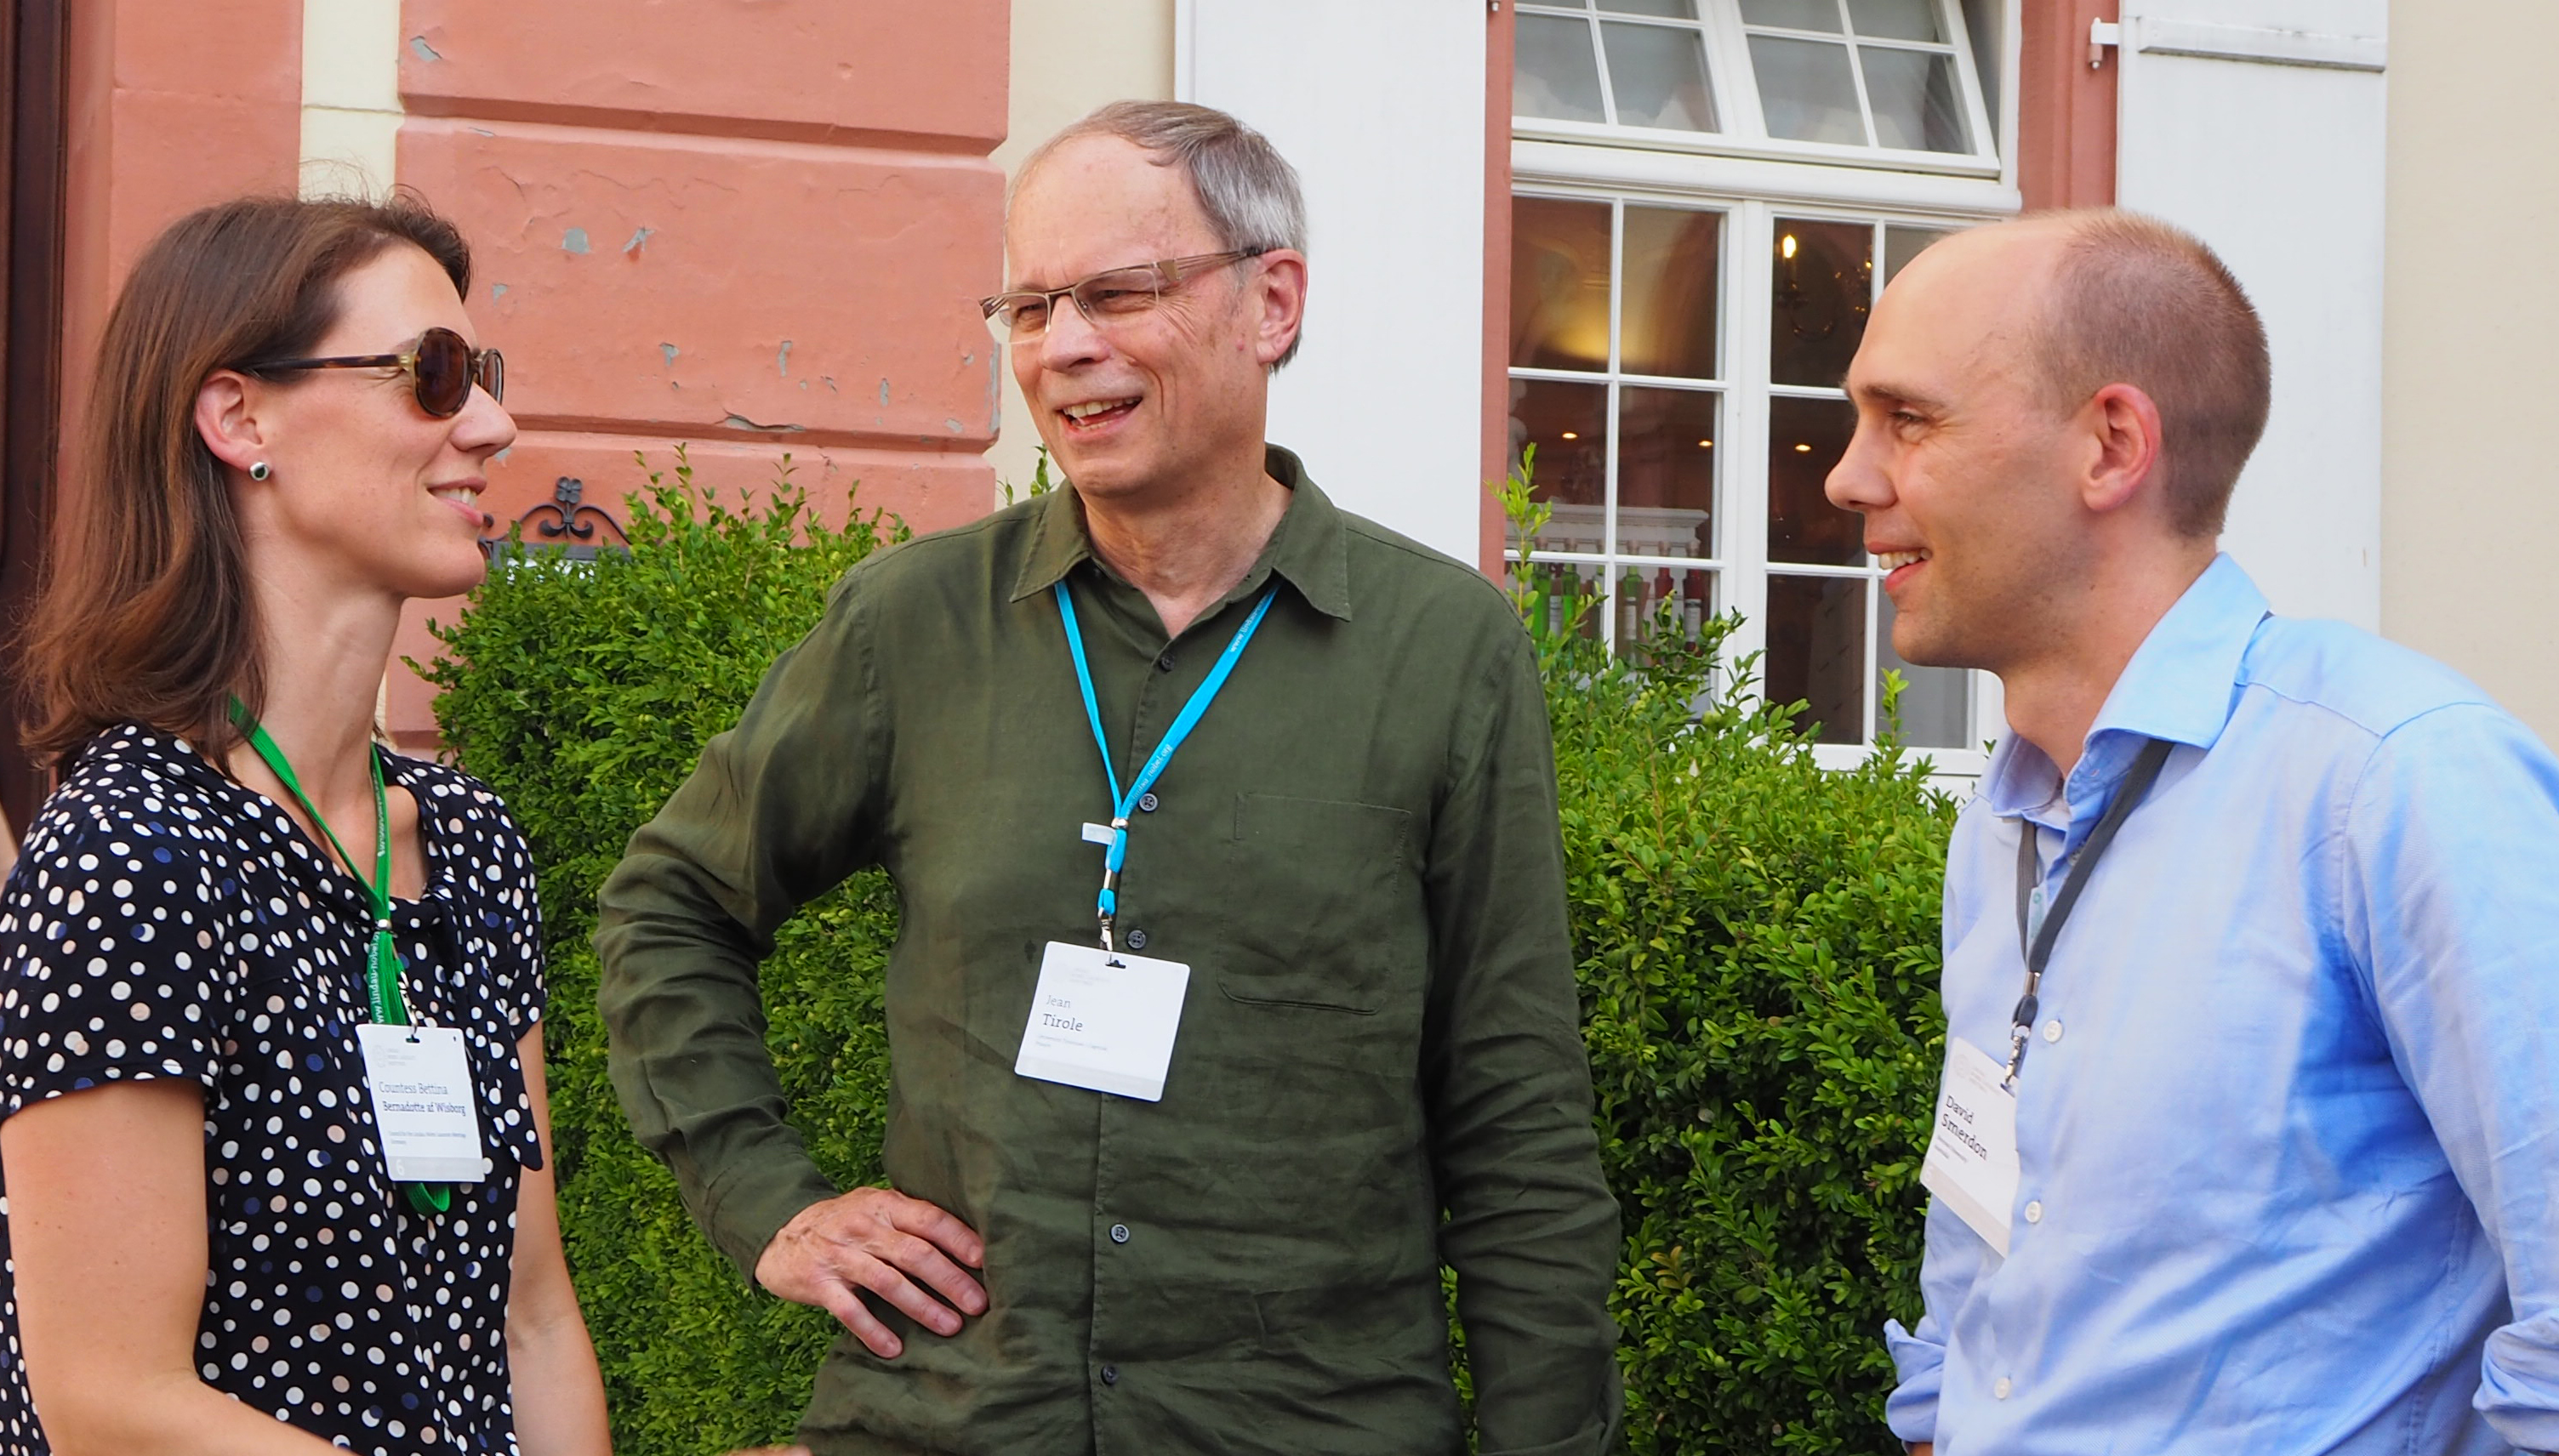 David Smerdon (right) with Countess Bettina Bernadotte and laureate Jean Tirole. Picture/Credit: Lisa Vincenz-Donnelly/Lindau Nobel Laureate Meetings